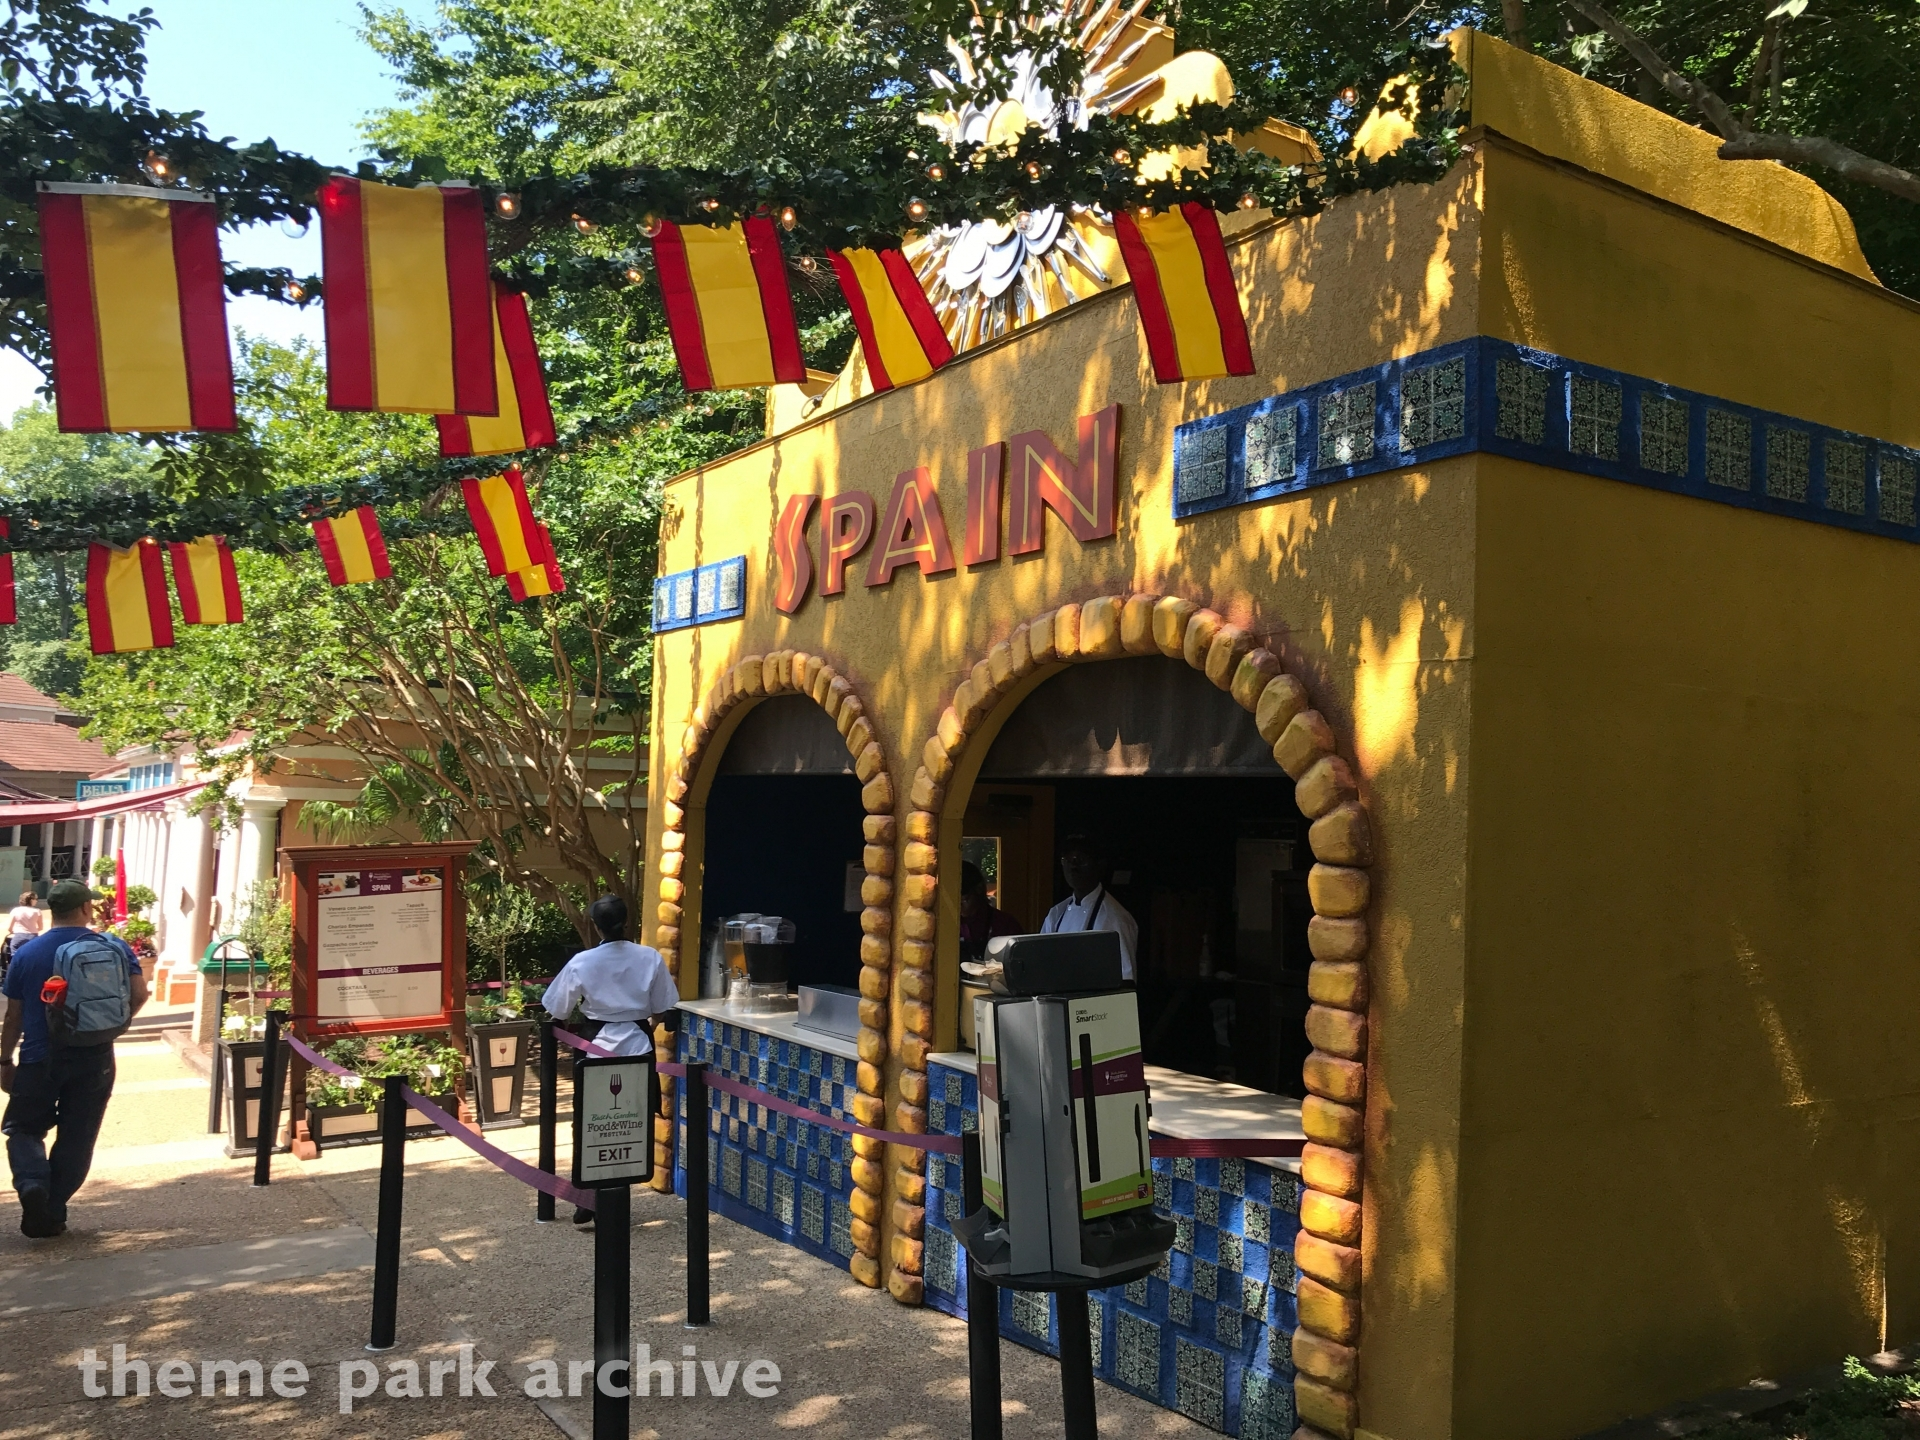 Italy at Busch Gardens Williamsburg | Theme Park Archive